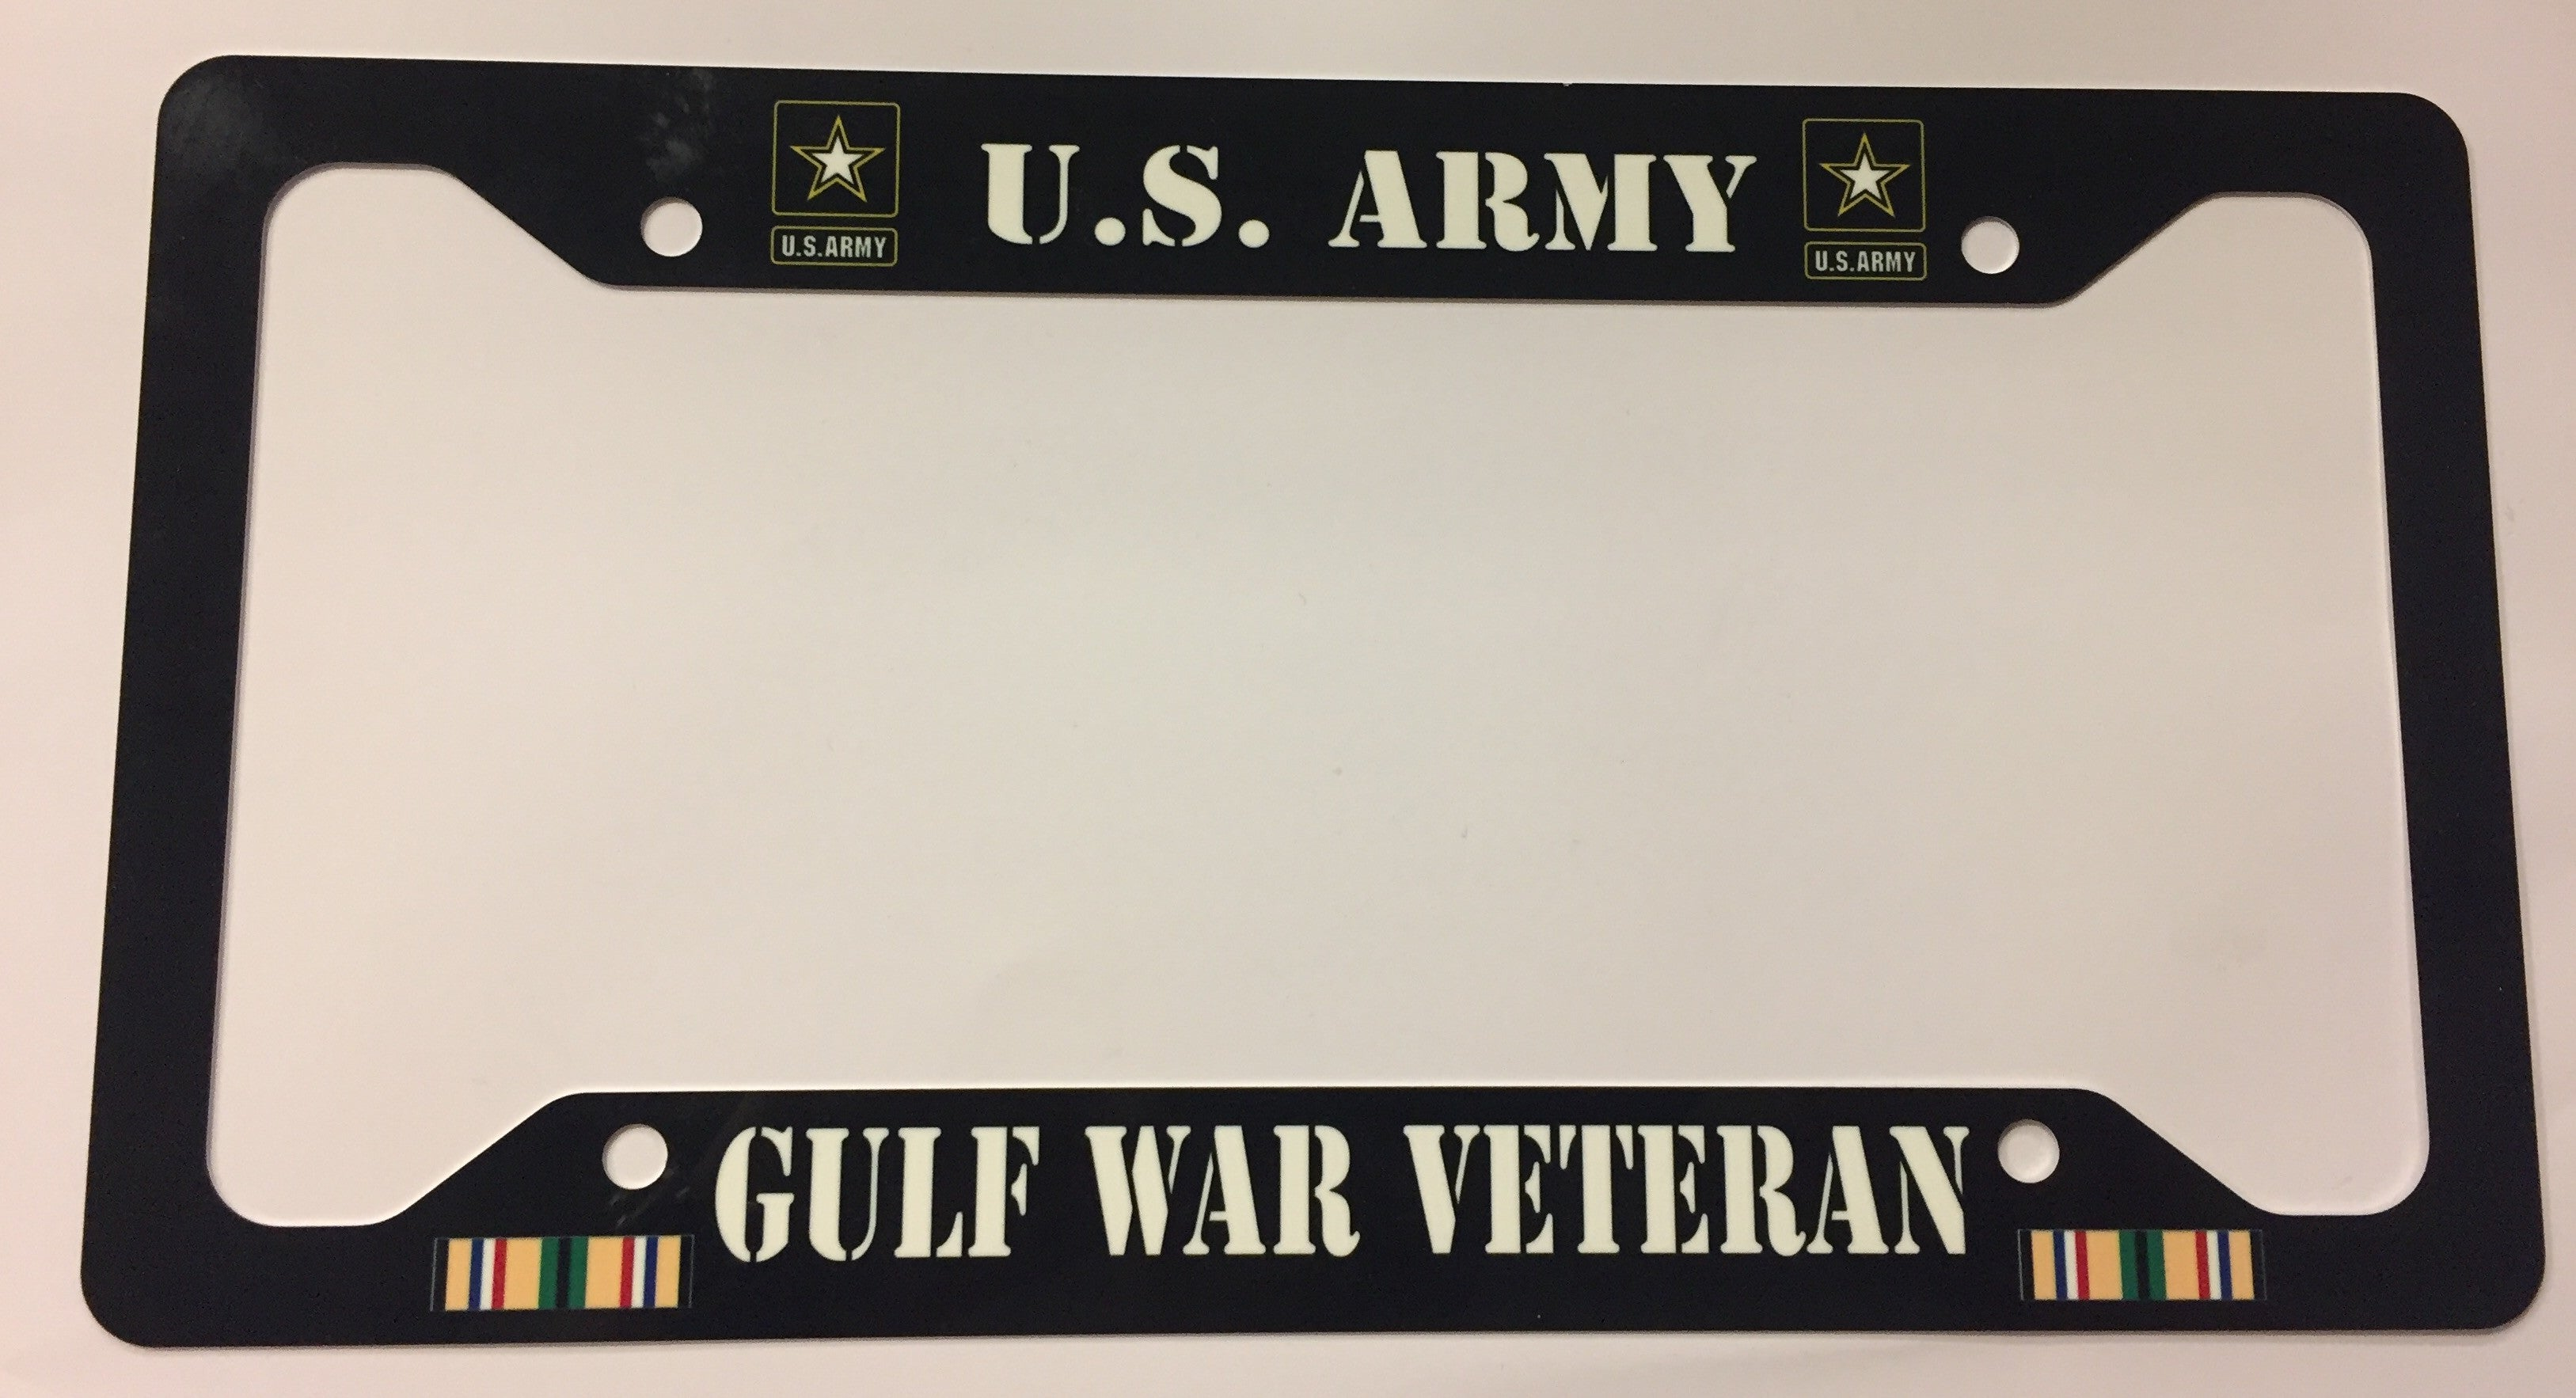 U.S. Army Gulf War Veteran License Plate Frame